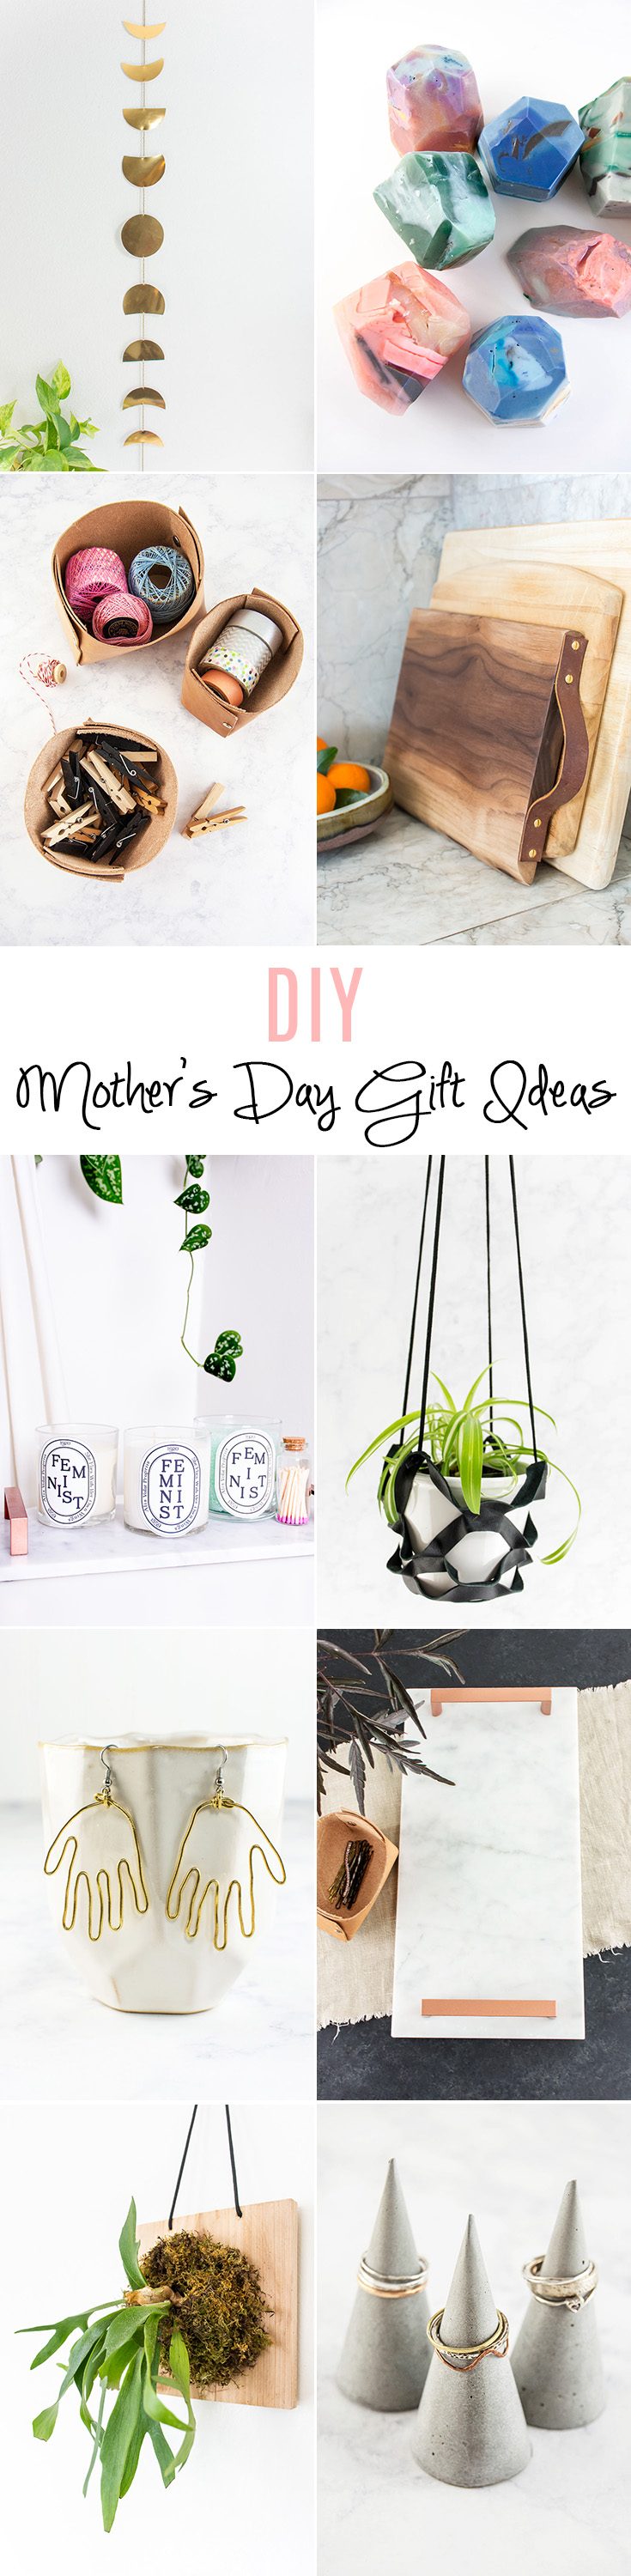 Want to make your mom a DIY gift? Here are 10 Mother's Day gifts you can make yourself.